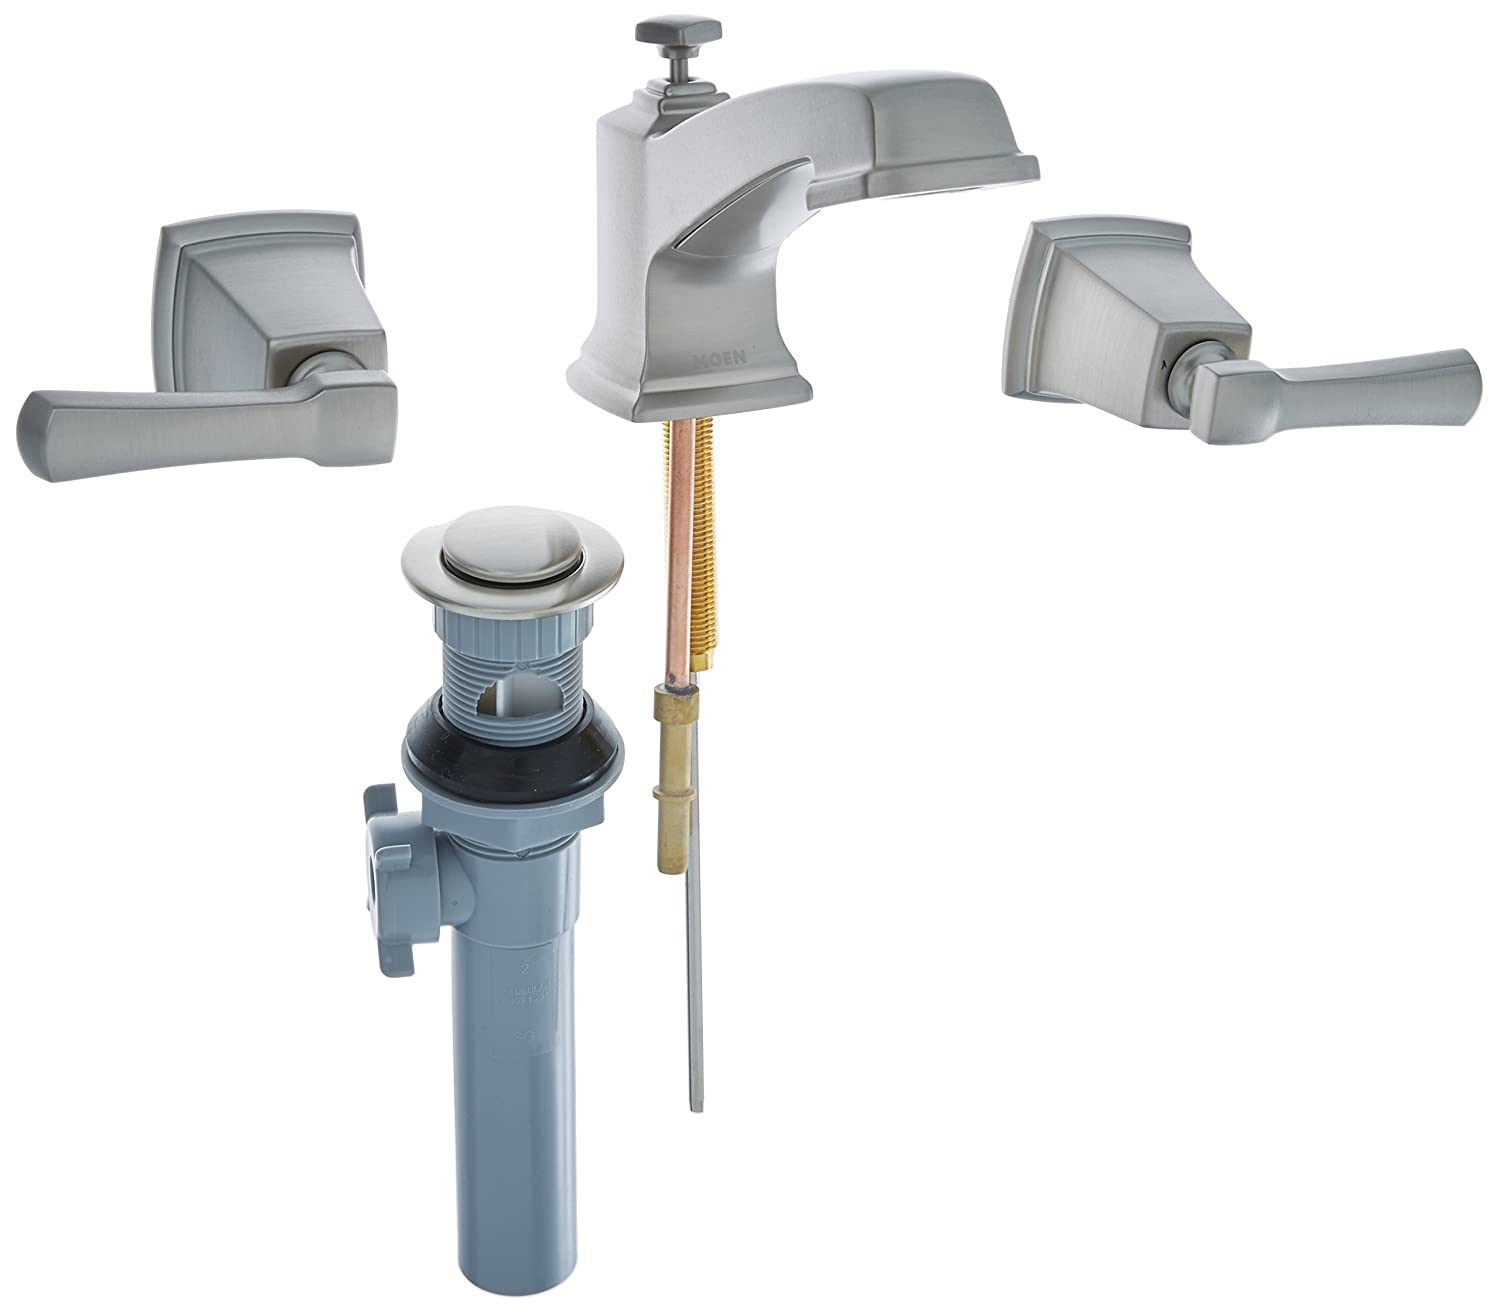 Magnificent Moen 84820Srn Double Handle Widespread Bathroom Faucet From The Boardwalk Collection Spot Resist Brushed Nickel Download Free Architecture Designs Grimeyleaguecom